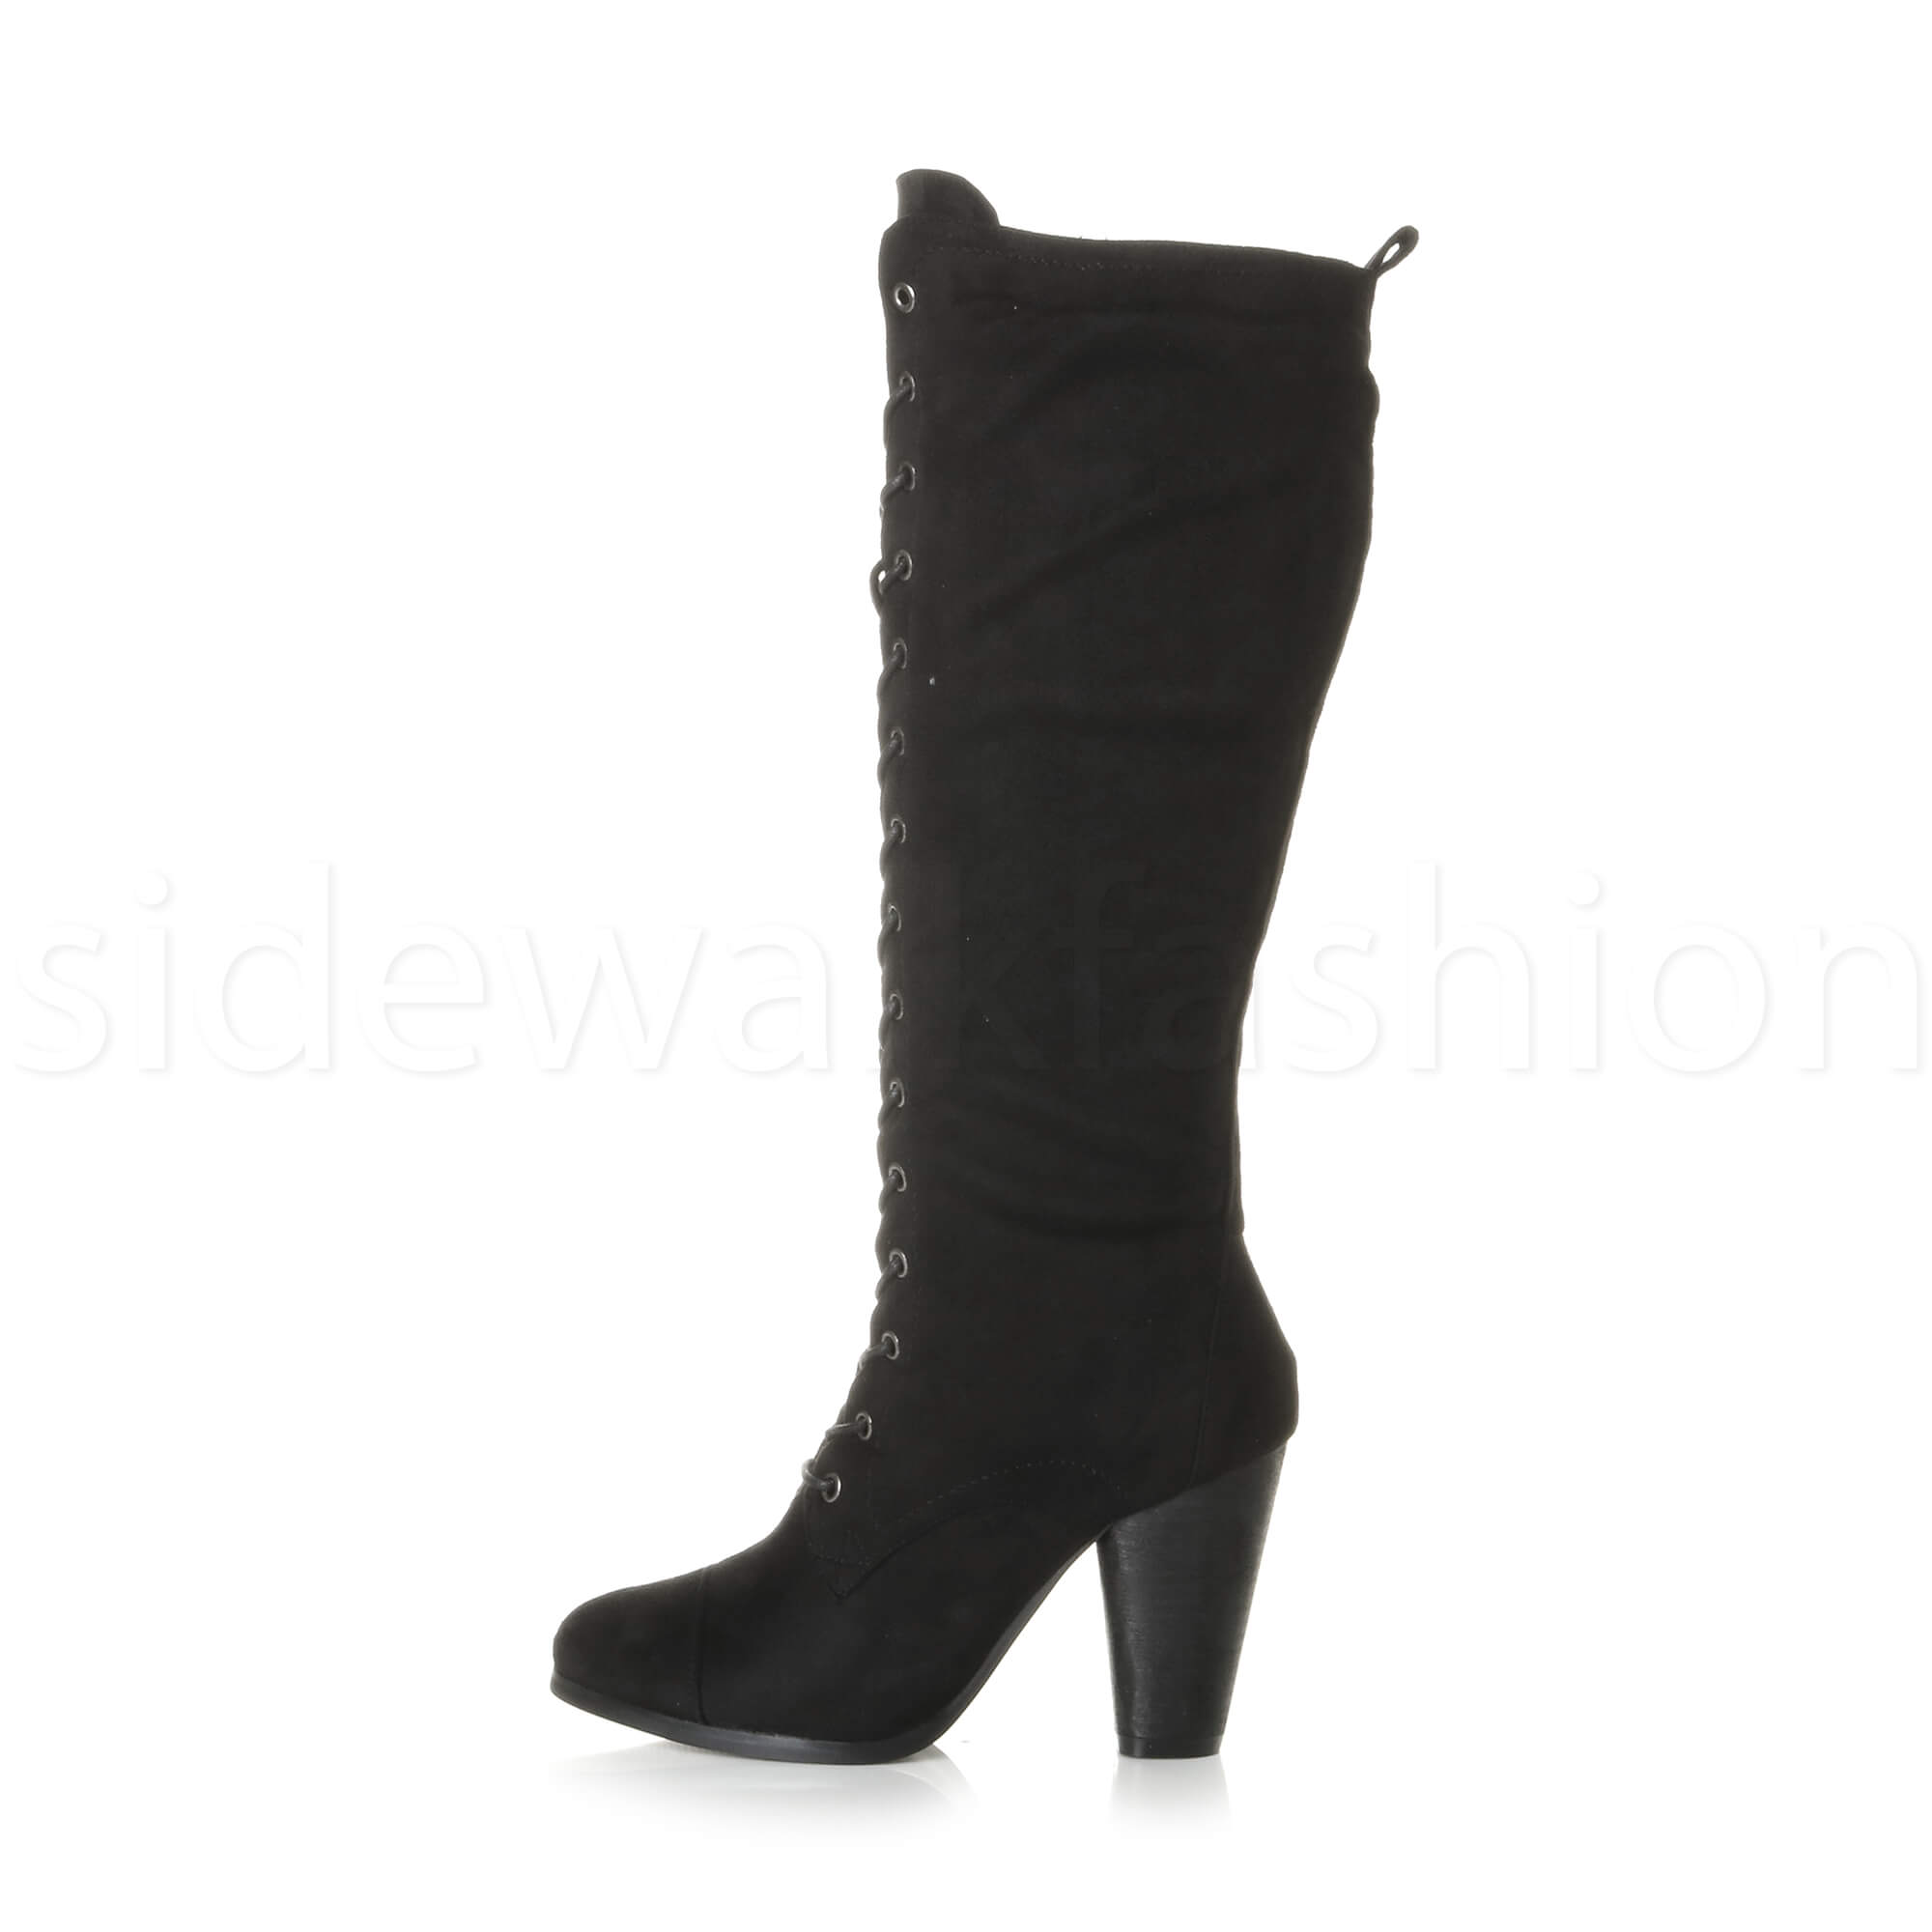 Womens-ladies-lace-up-calf-knee-high-heel-combat-military-victorian-boots-size